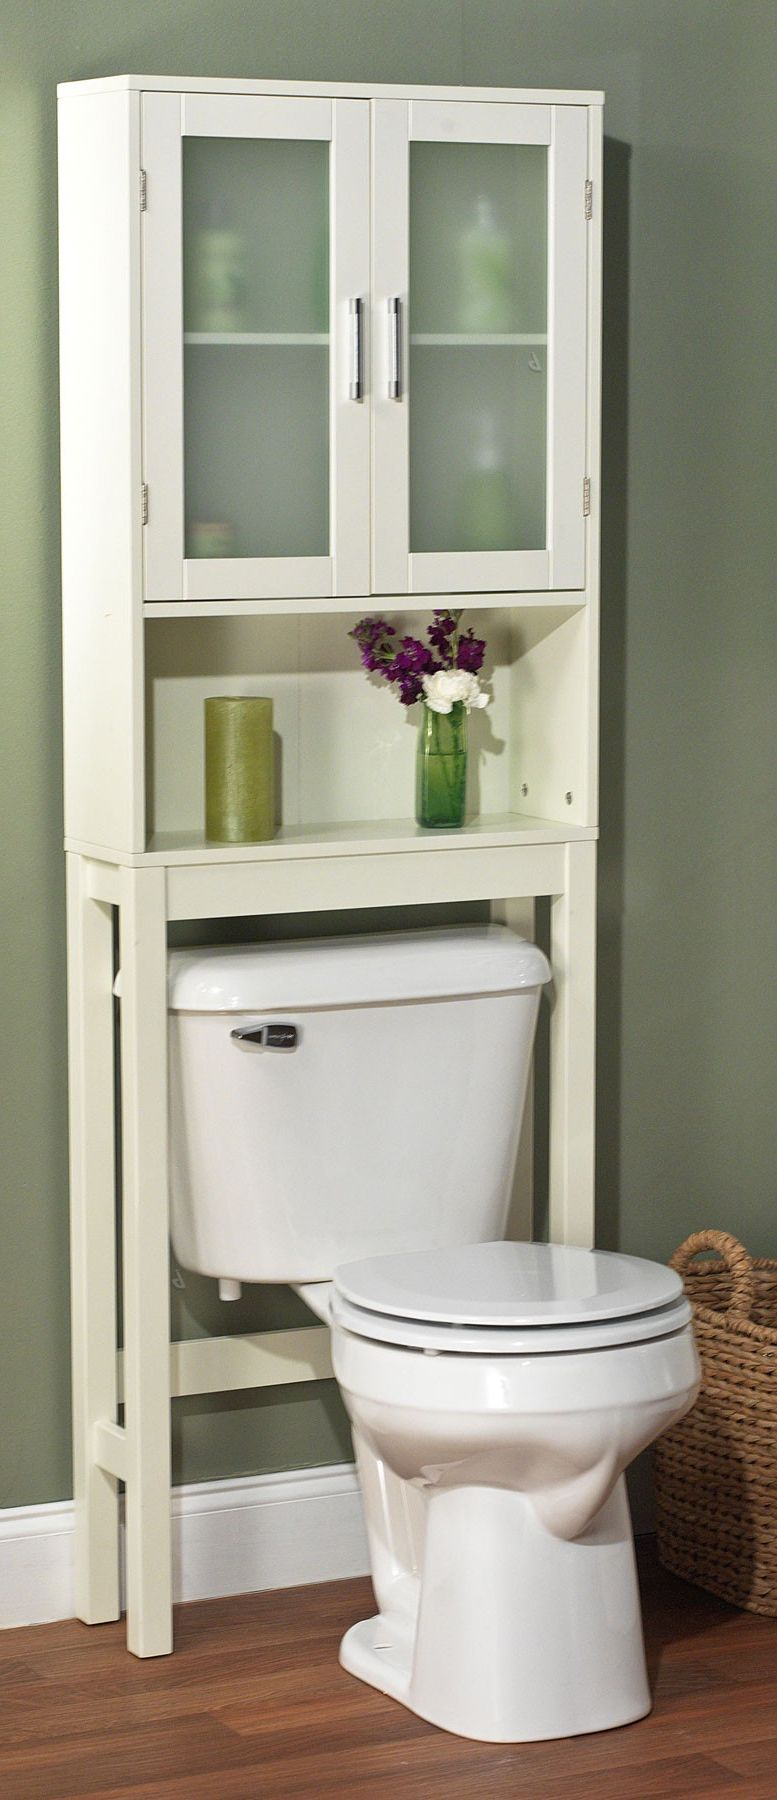 Pin by Tamisha Smith on DIY Bathroom Small bathroom